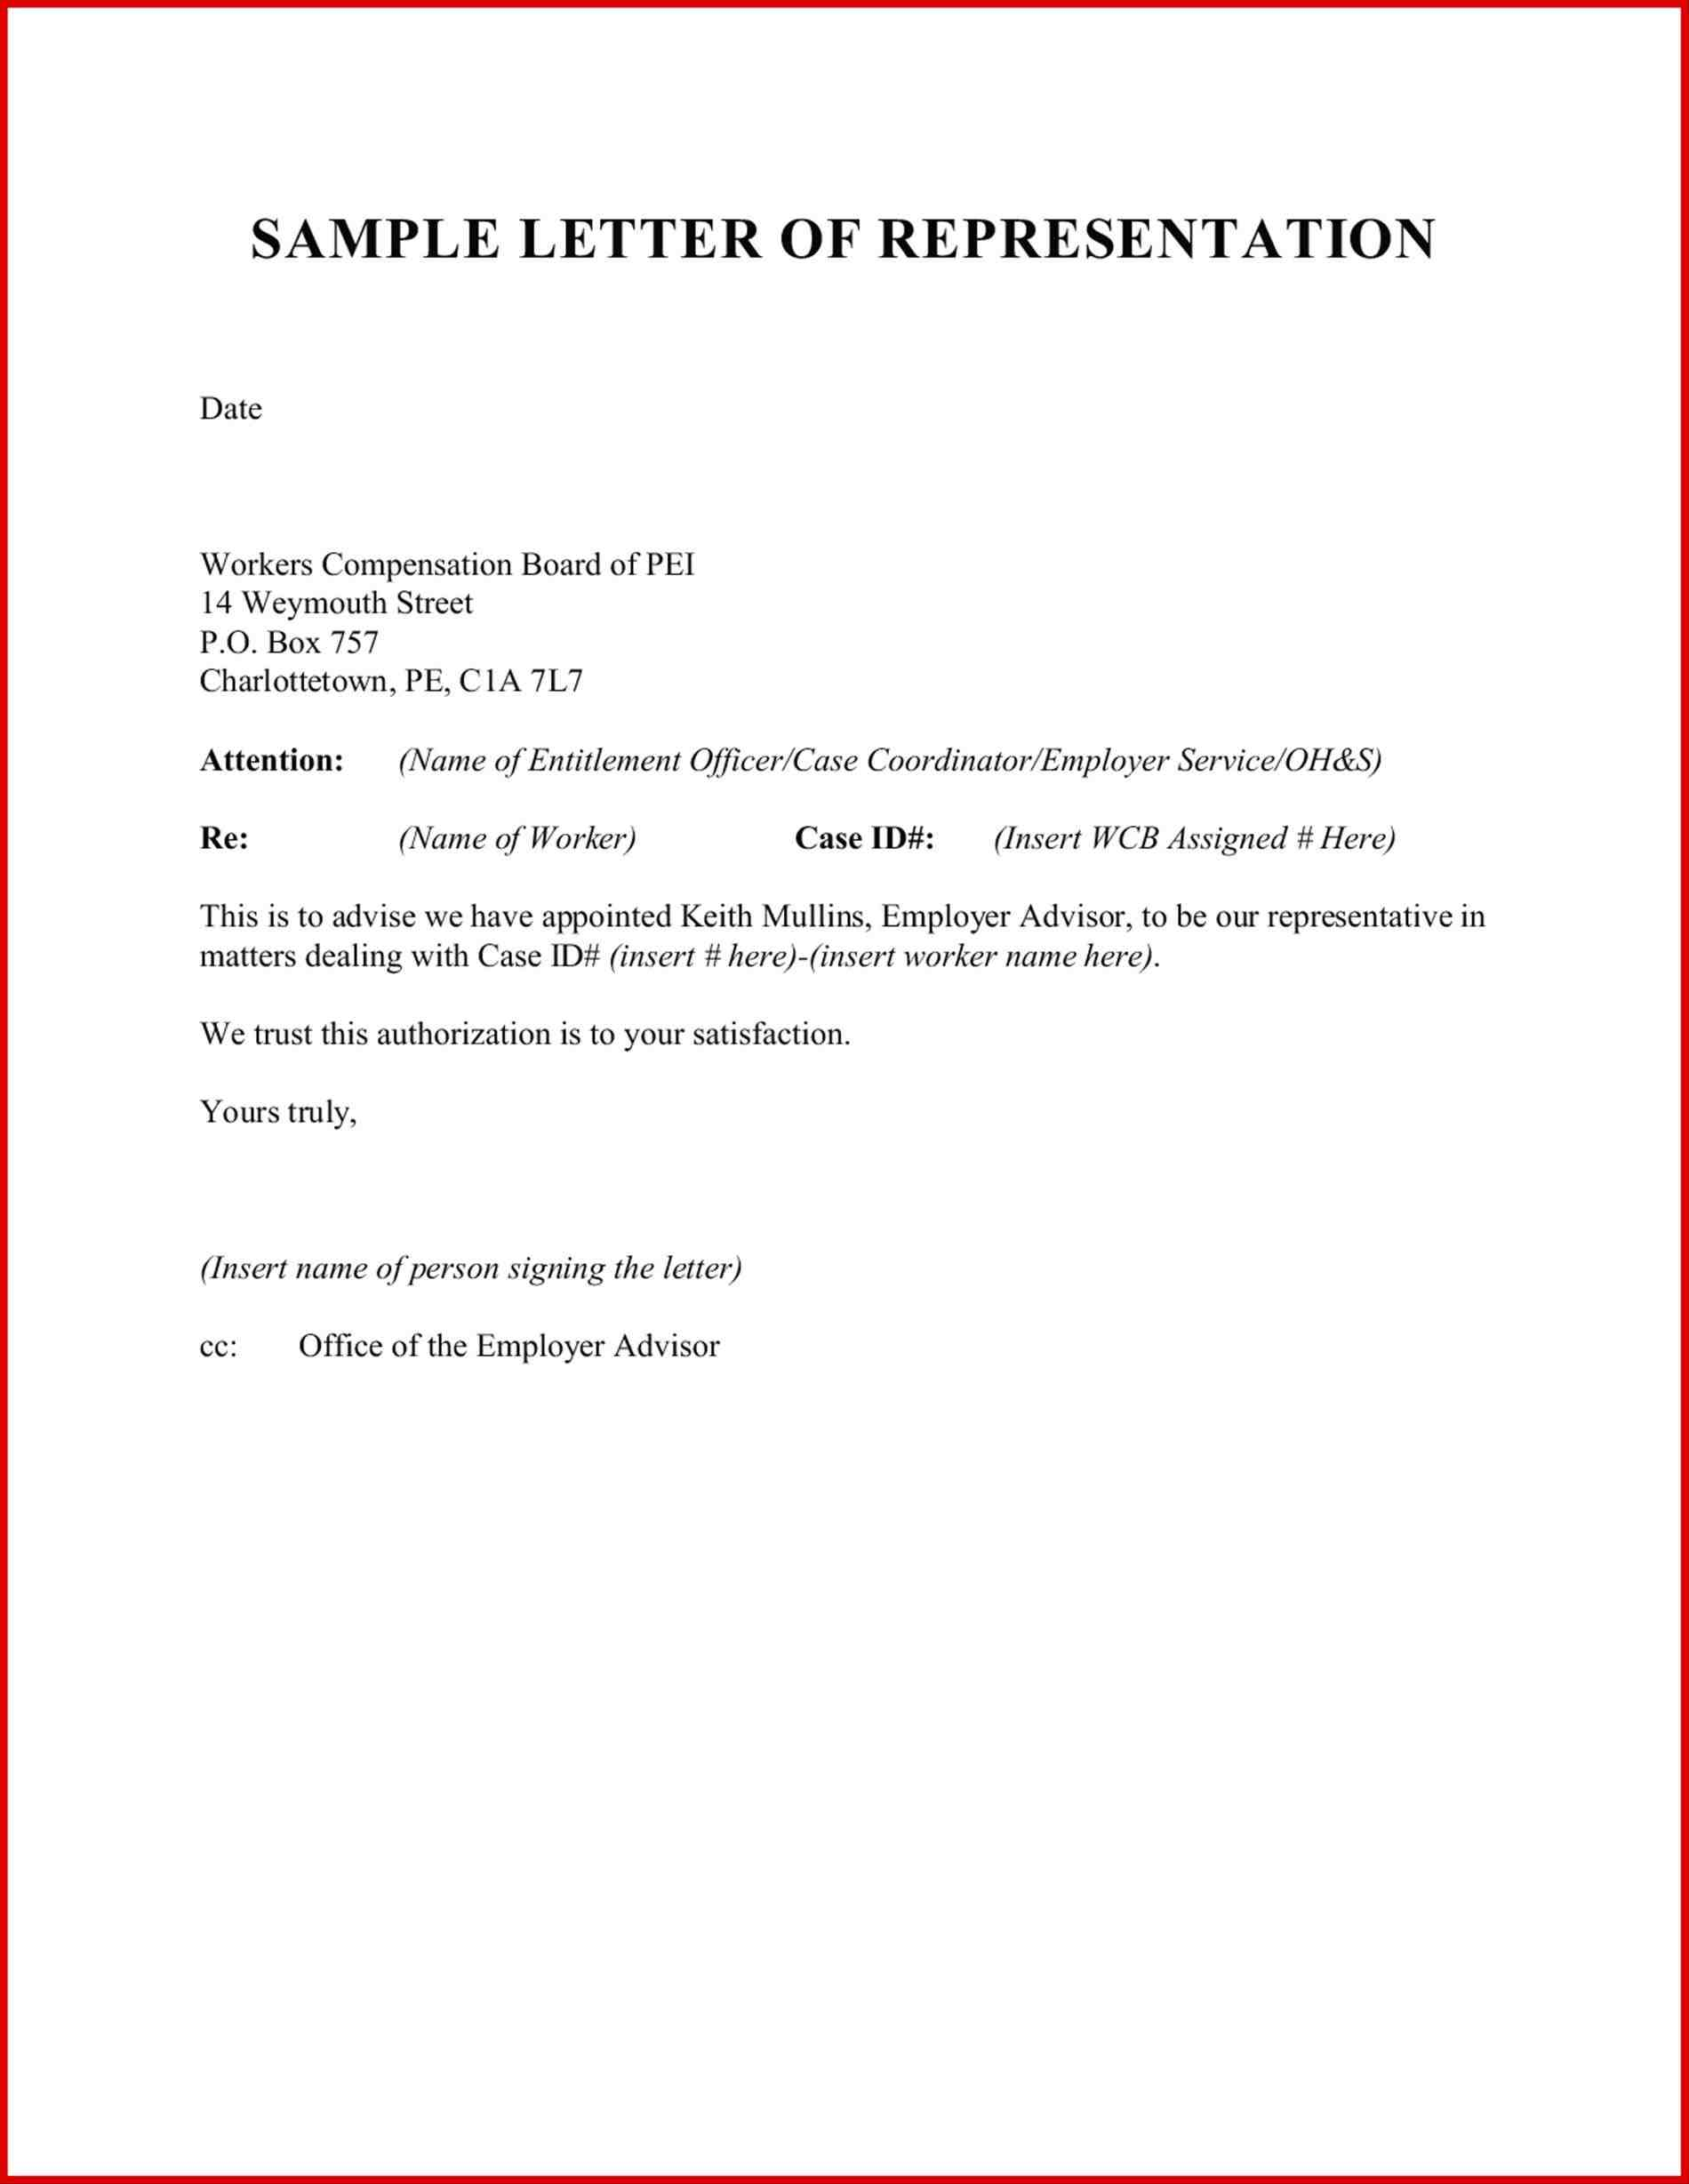 Ledger Paper Legal Legal Representation Letter Template Letter